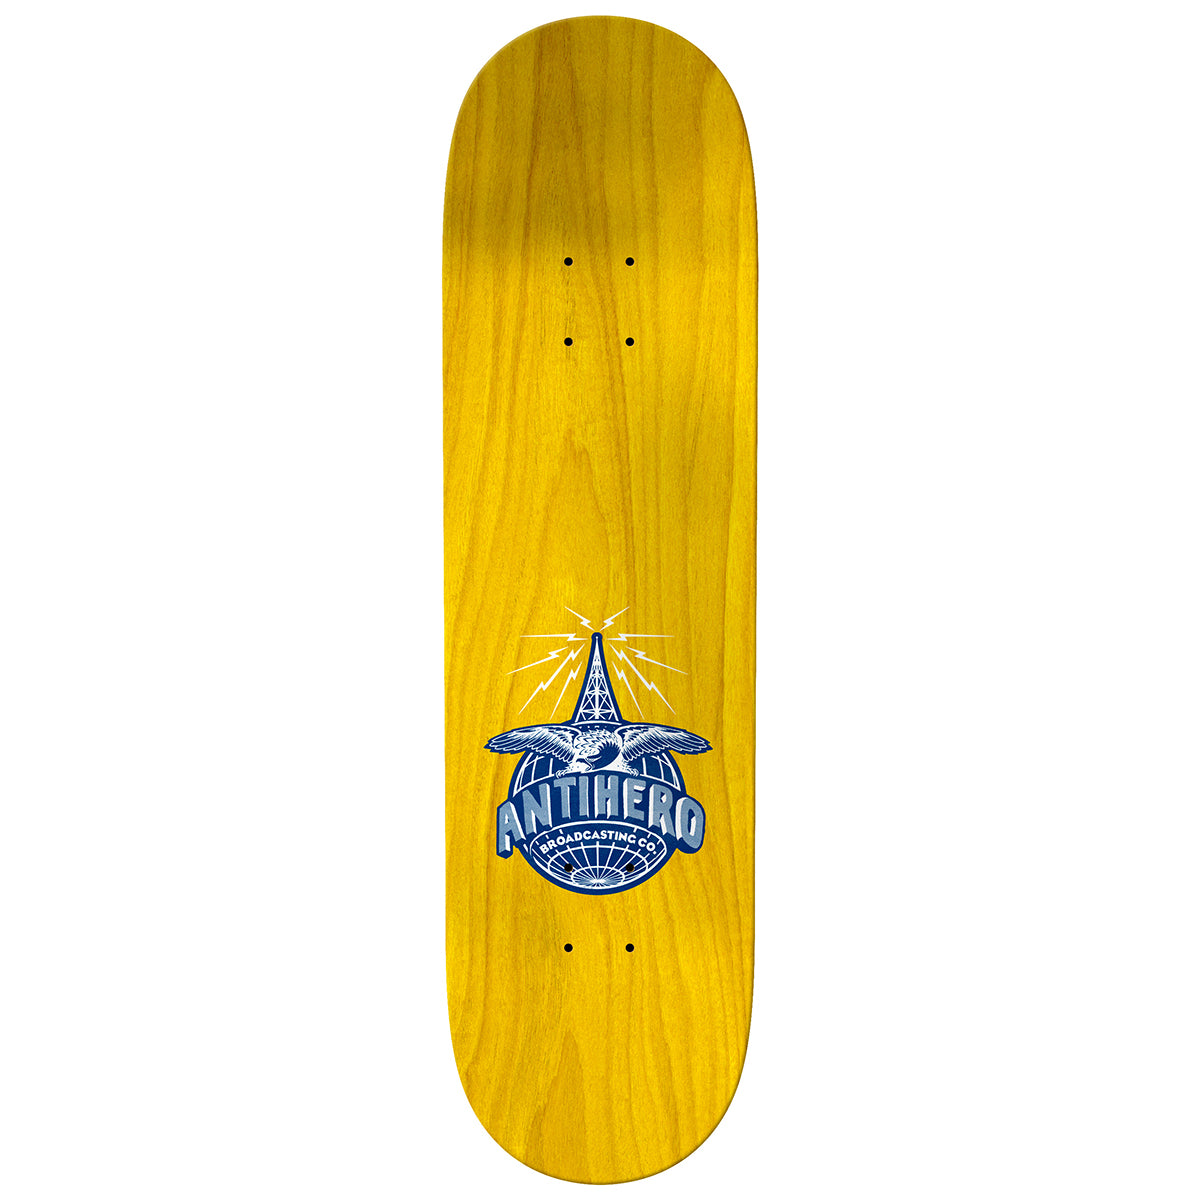 Anti Hero Raney Broadcasting Deck 8.06""